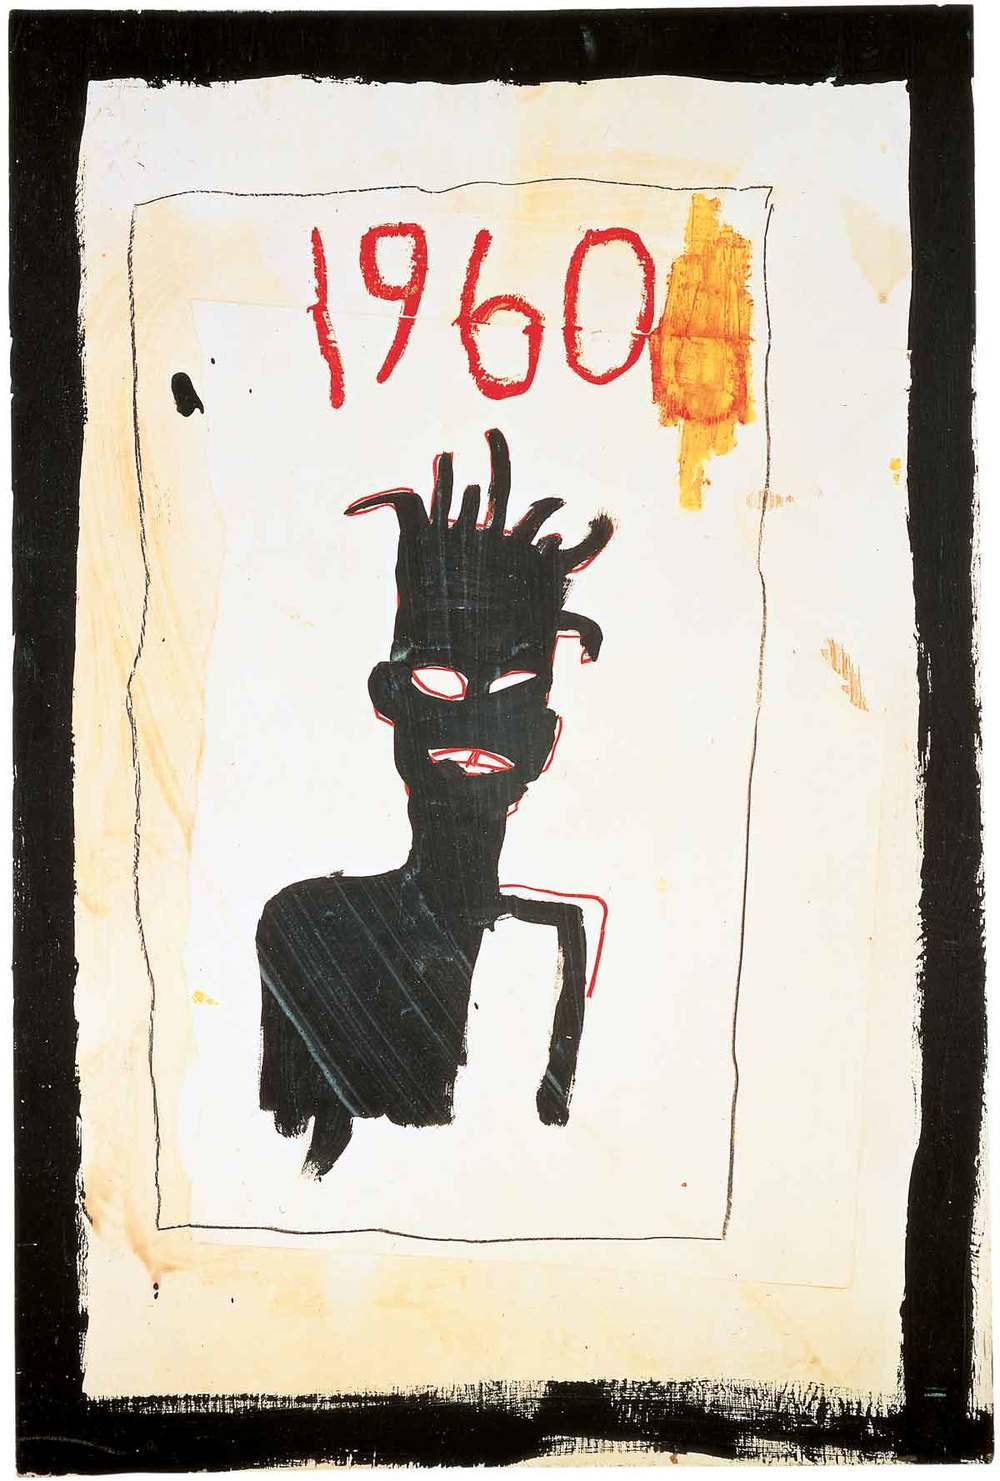 self portrait: jean michel basquiat